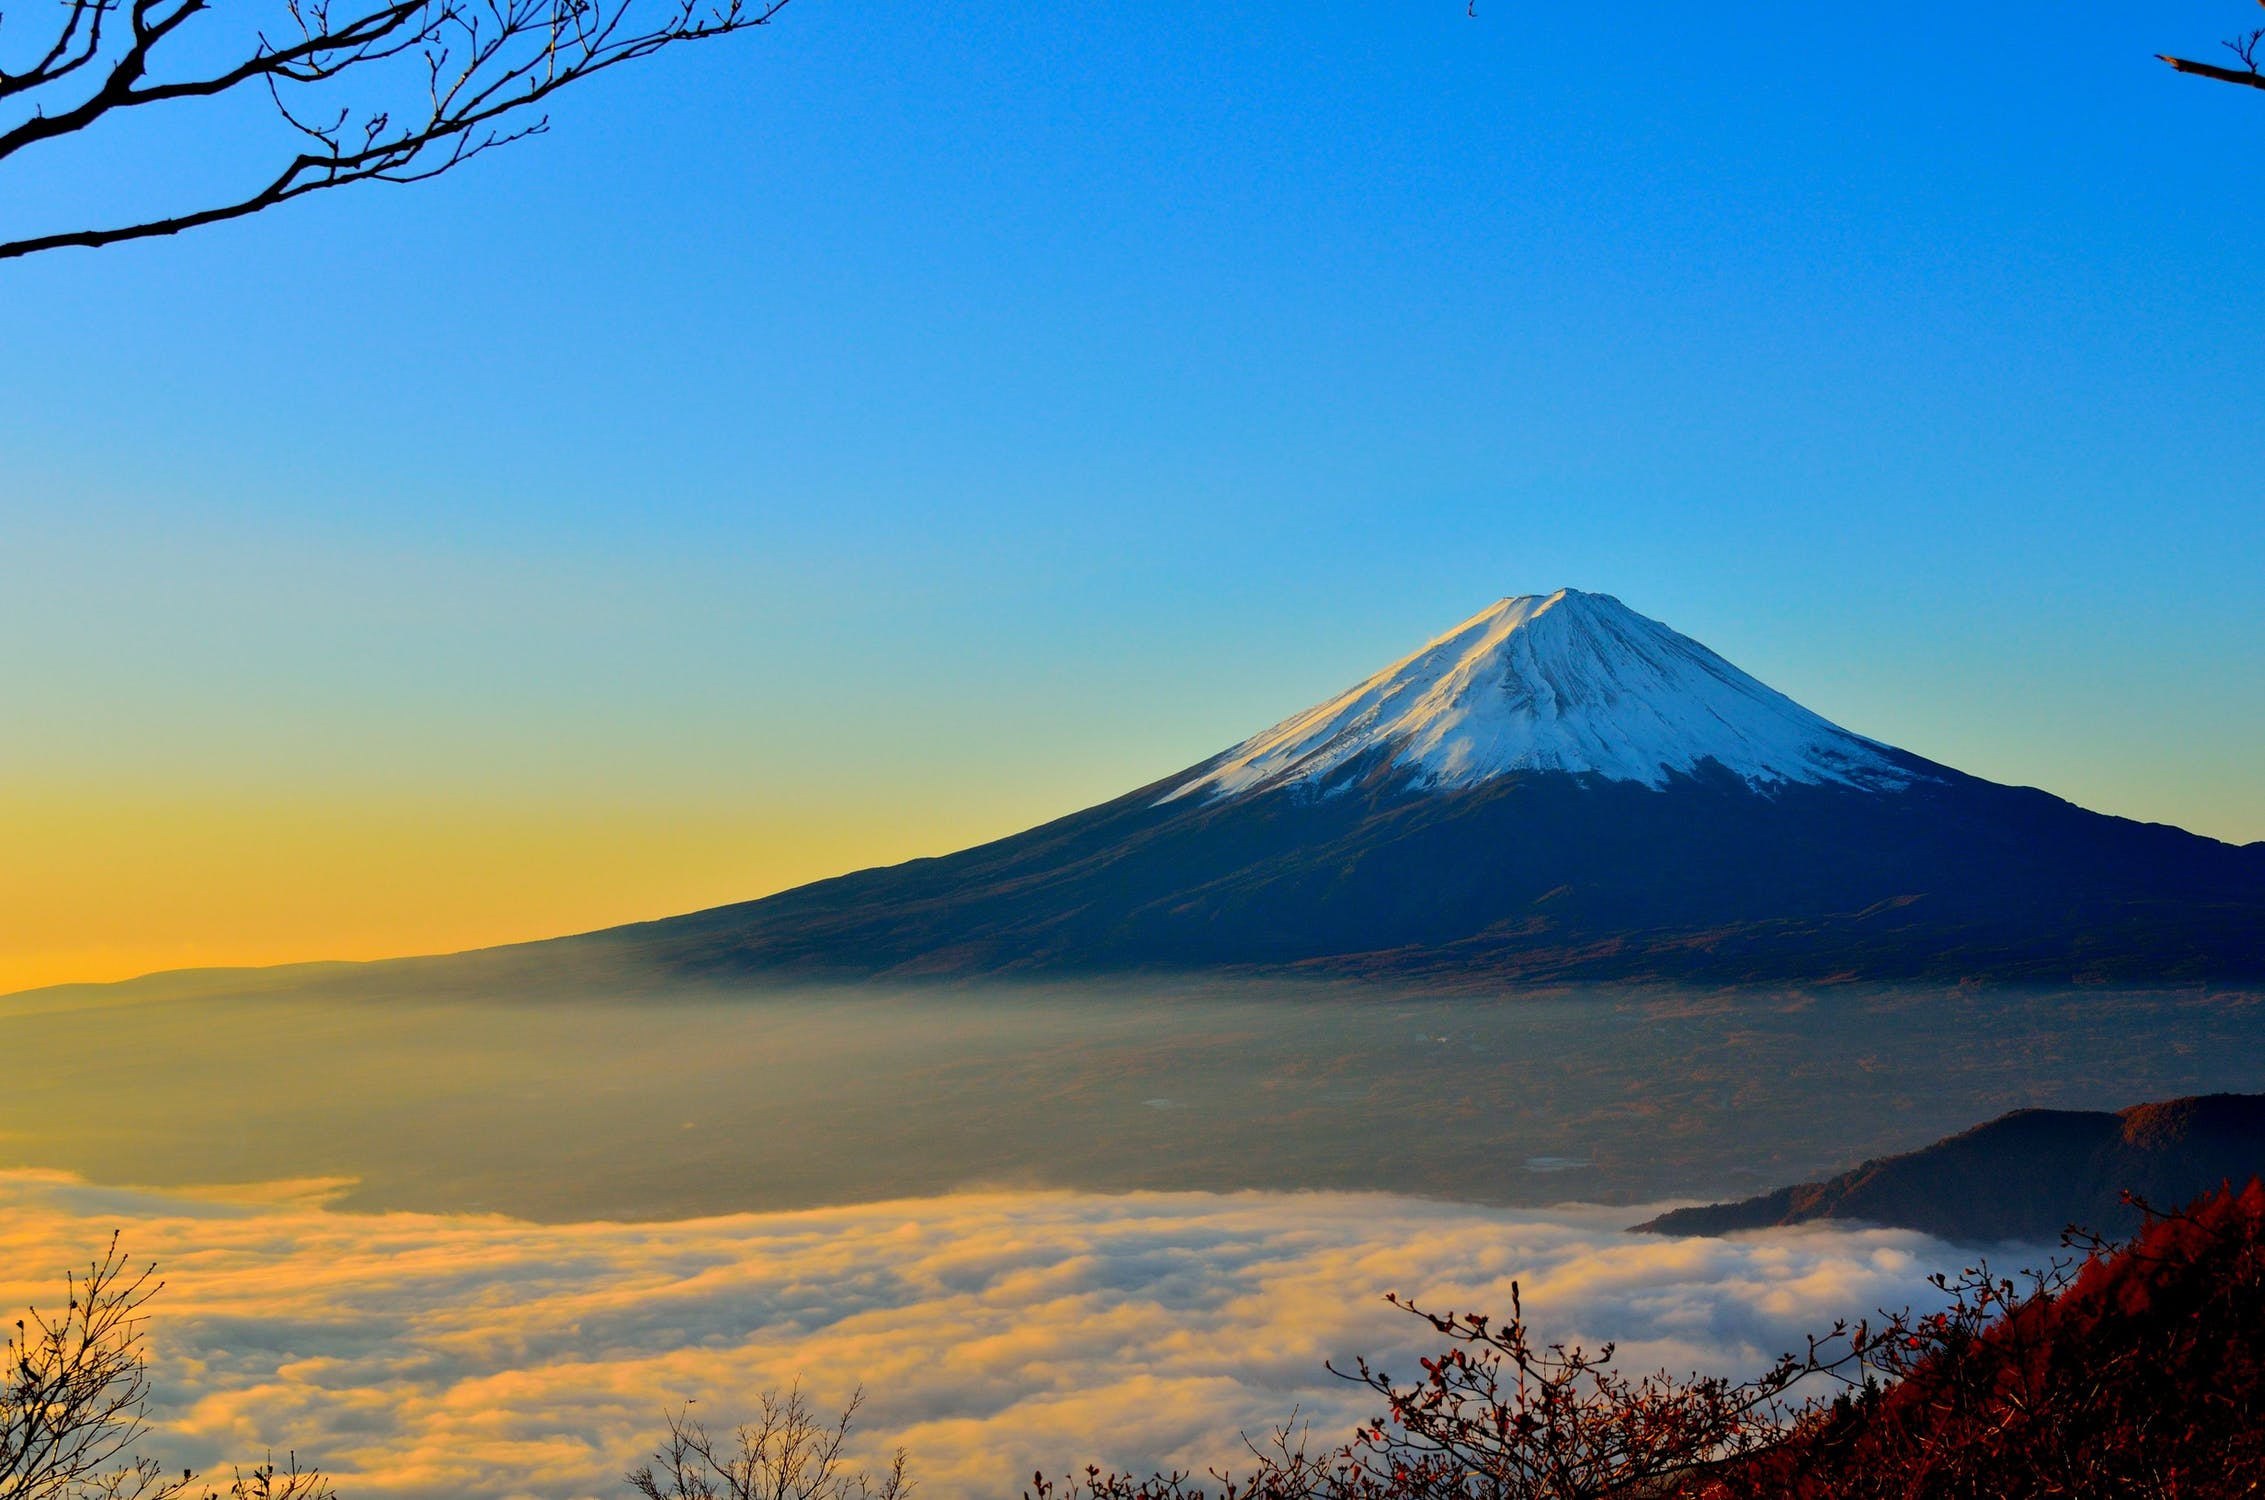 A Japanese mountain.